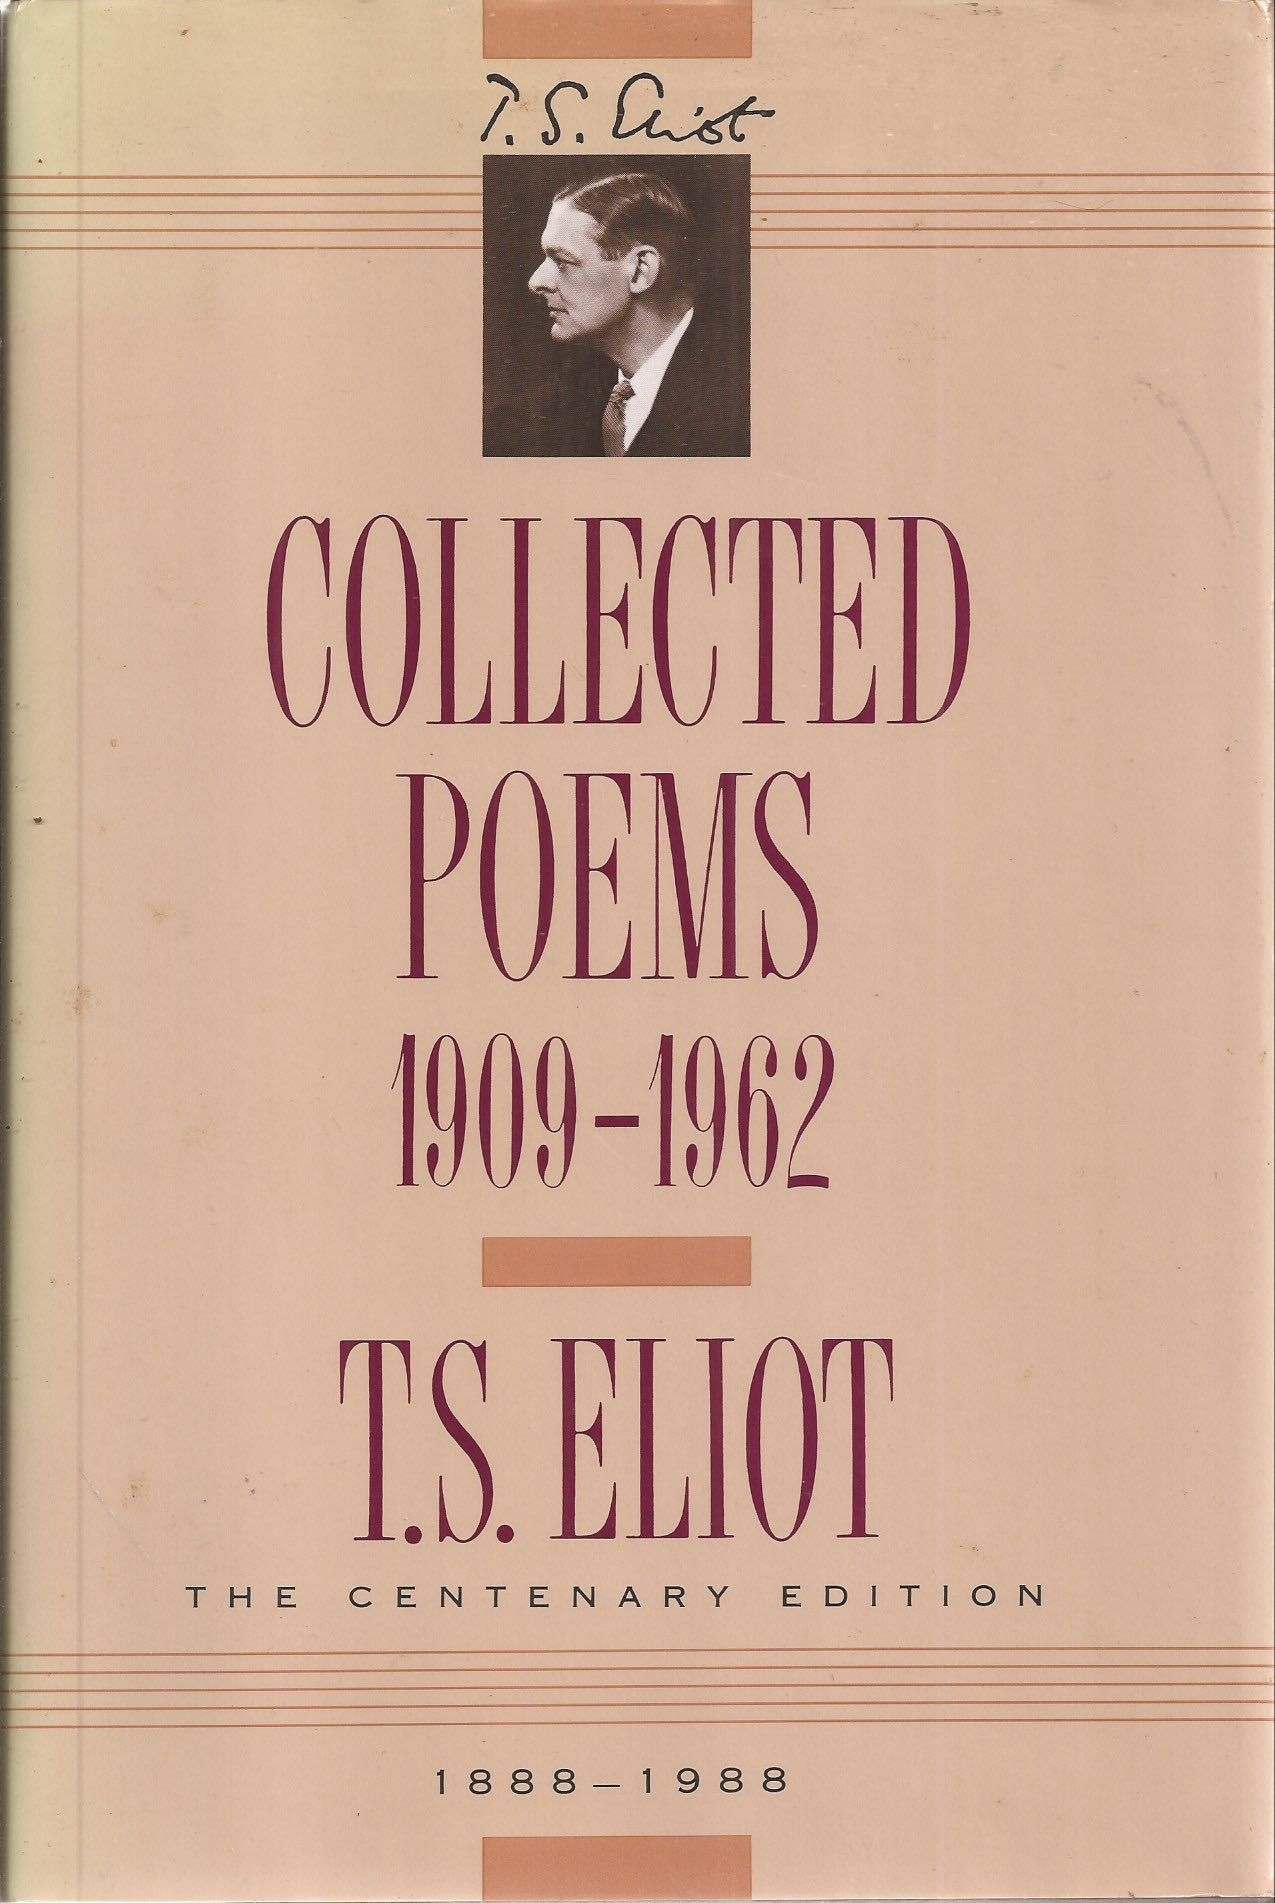 Collected Poems 1909 1962 Of T S Eliot The Centenary Edition 1888 1988 By T S Eliot Hardcover 1991 Reprint From Auldfarran Books Ioba And